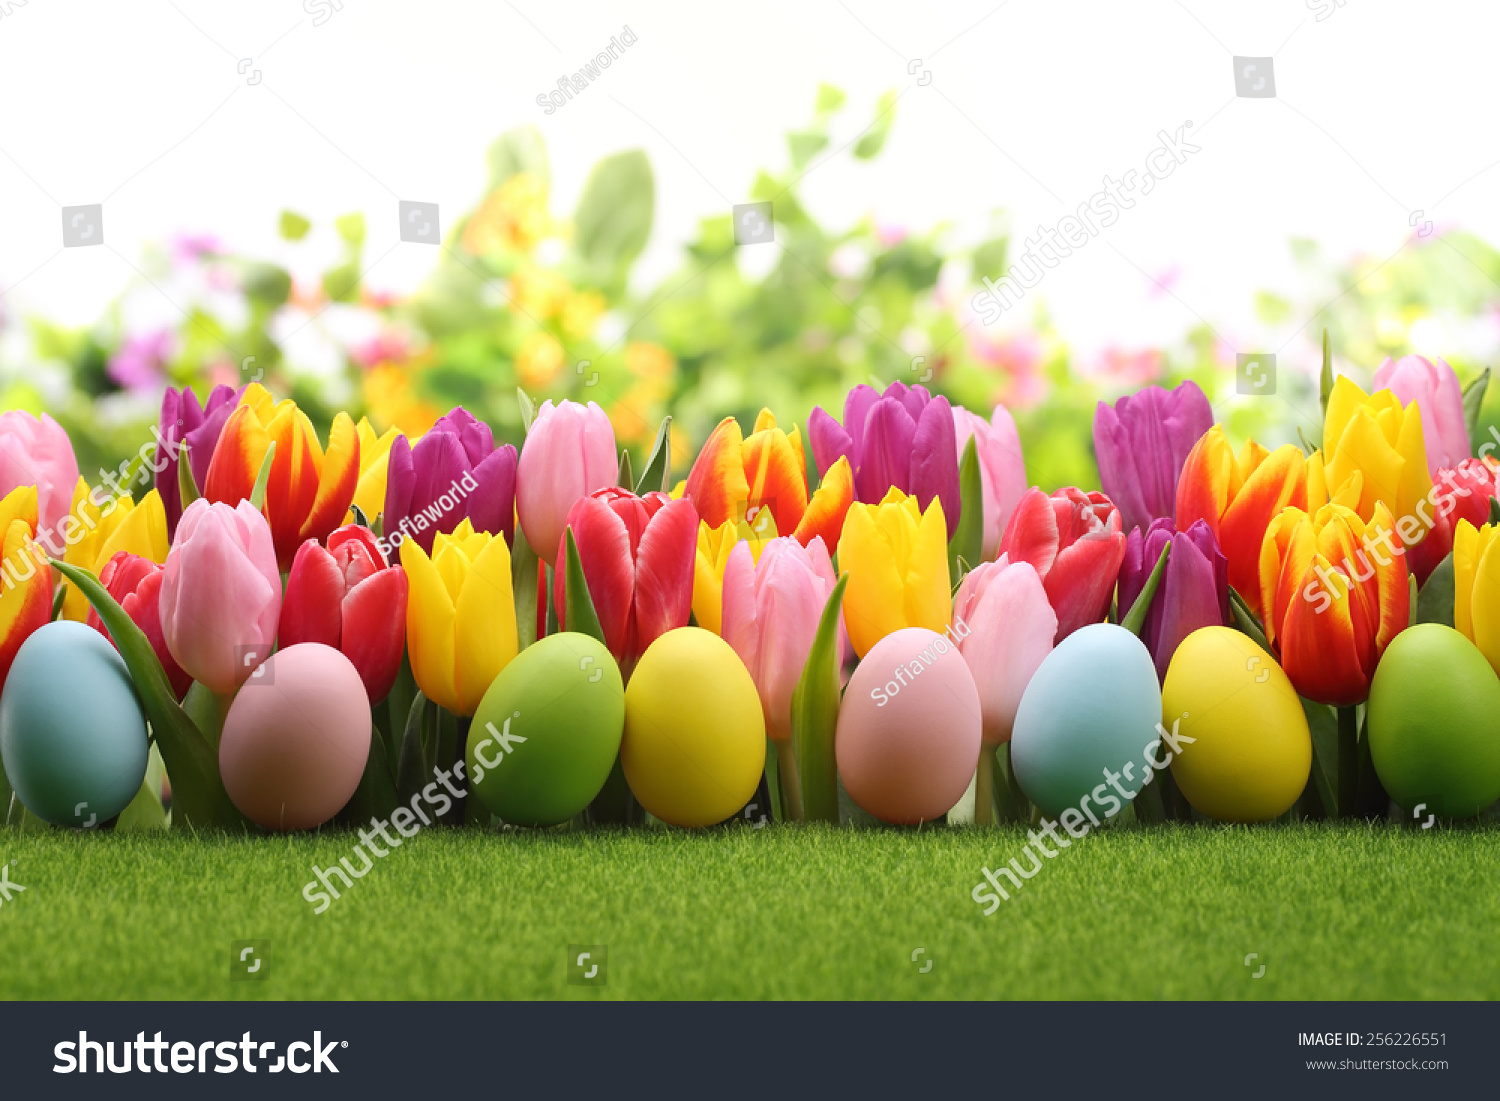 Easter Eggs Decorated Flowers On Meadow Stock Photo 256226551 ...